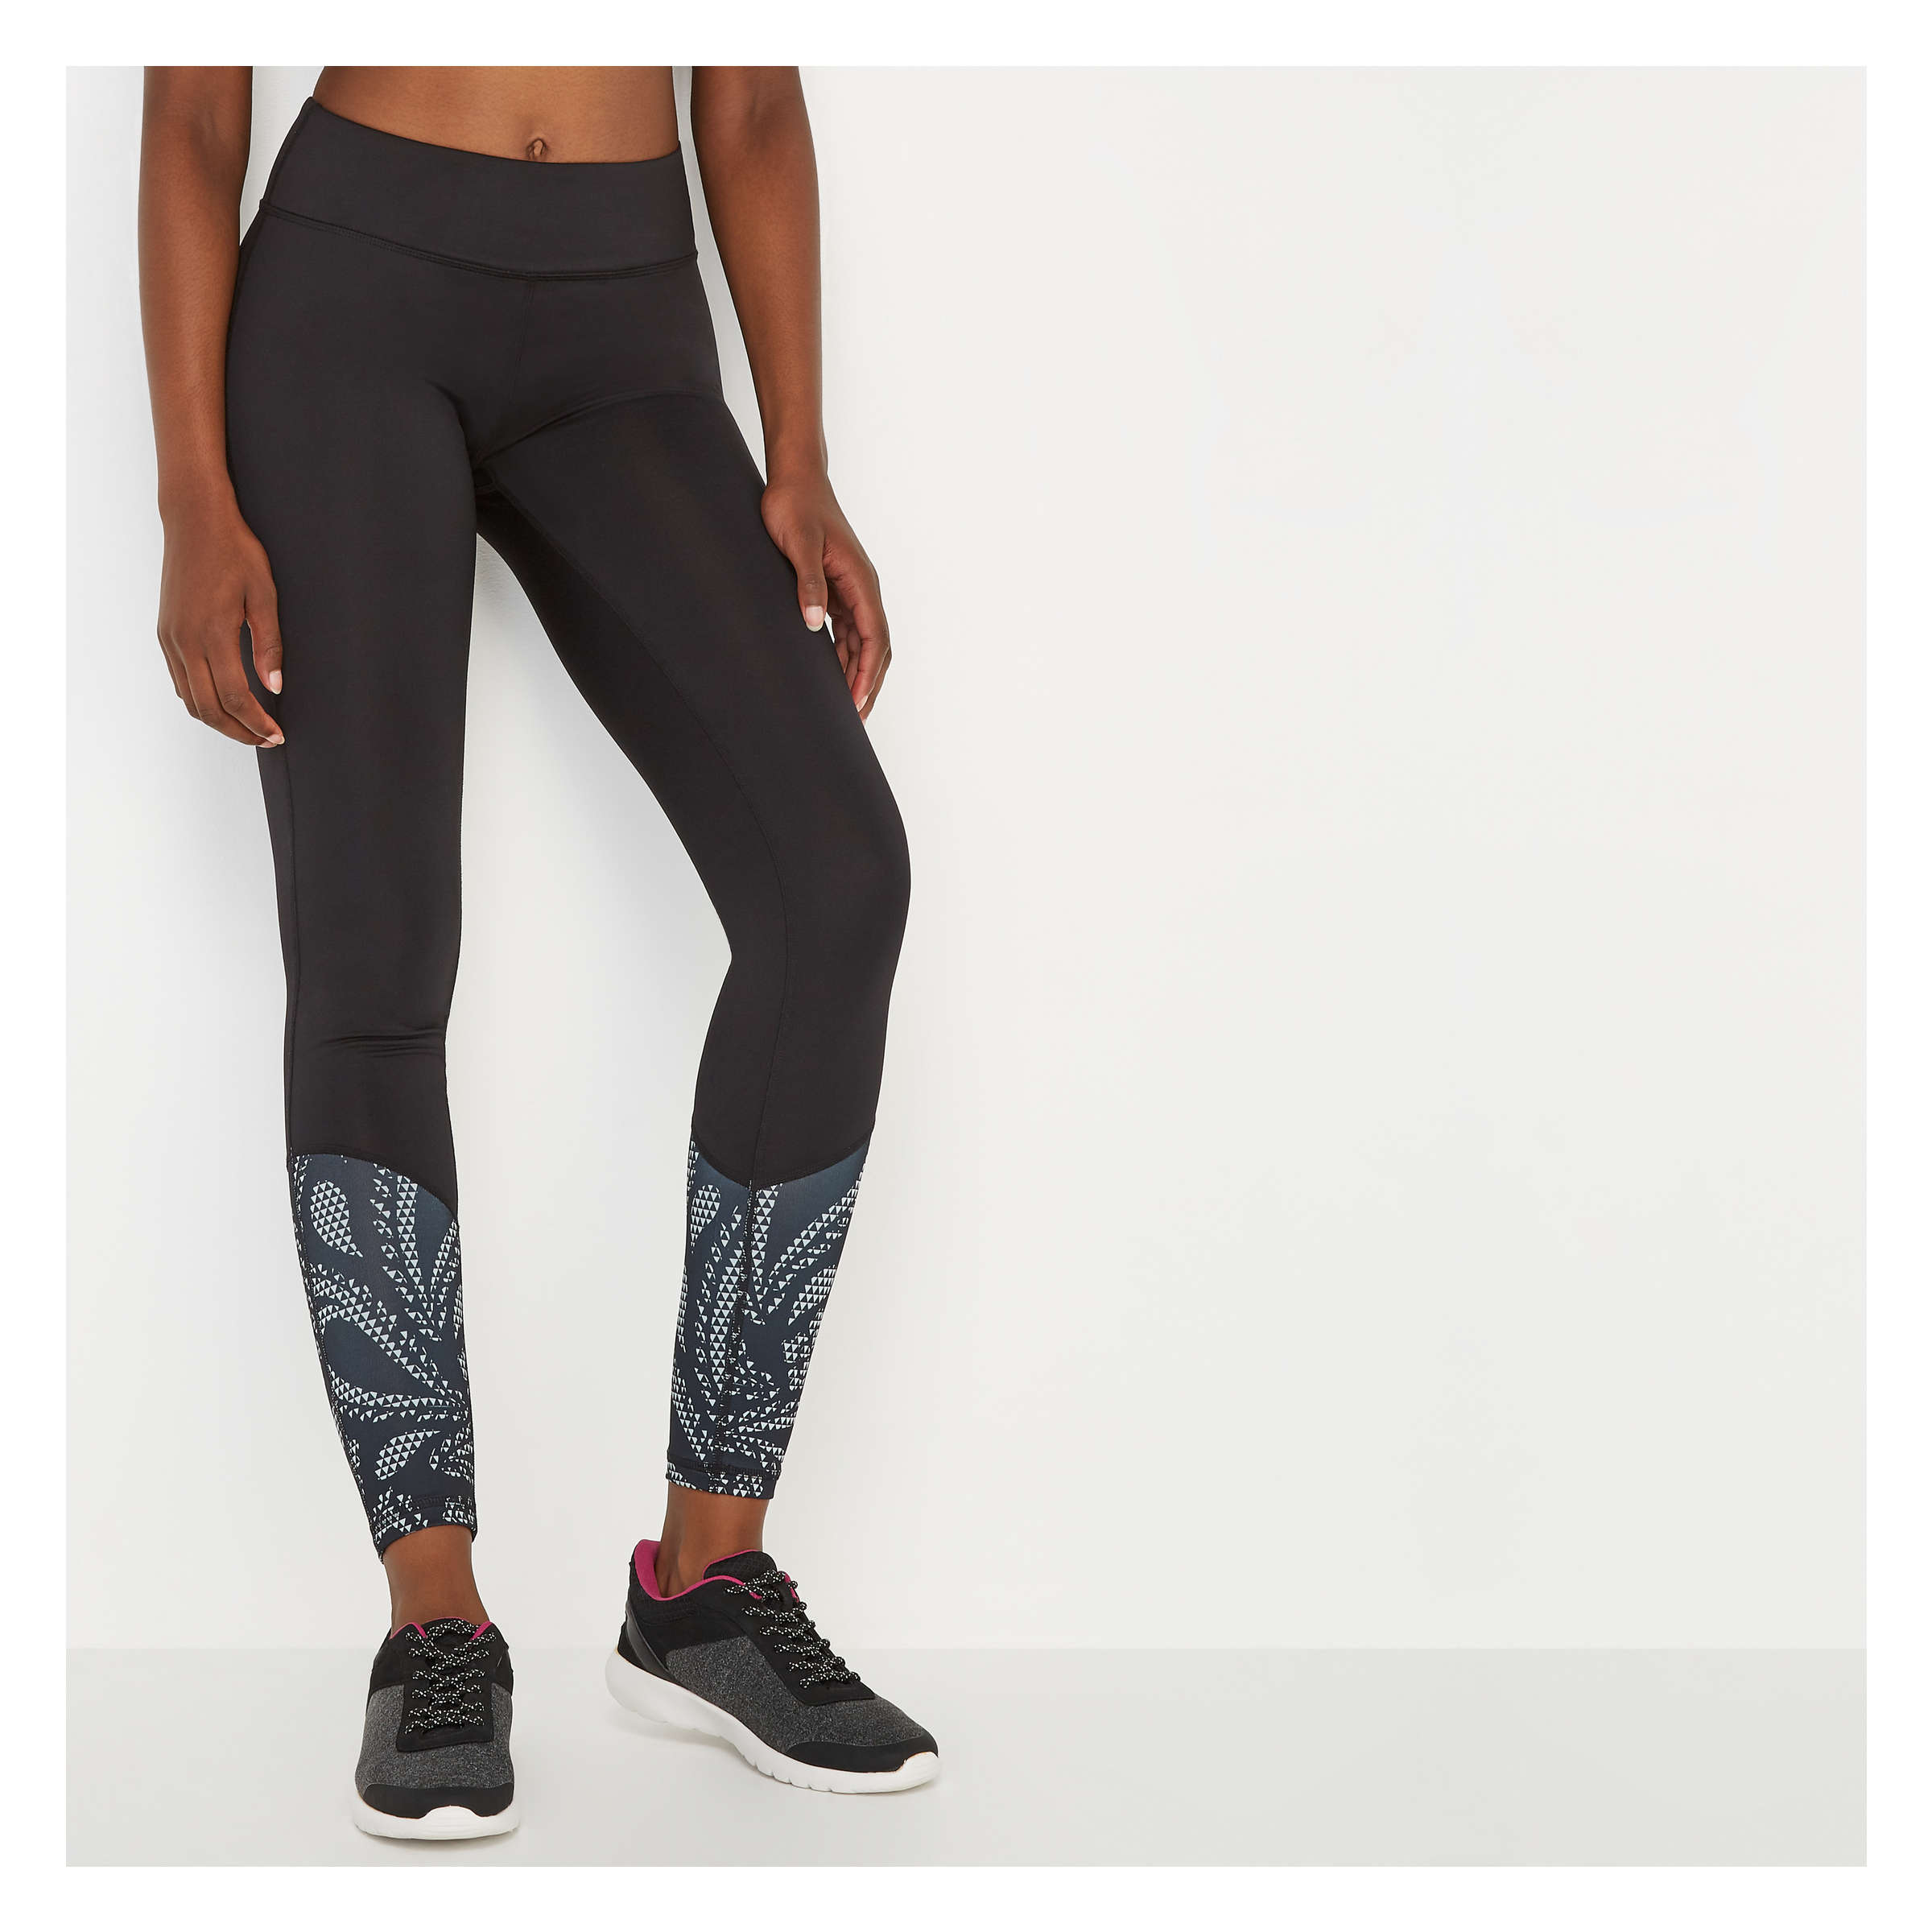 555c332af1602 Print Hem Active Legging in Black from Joe Fresh